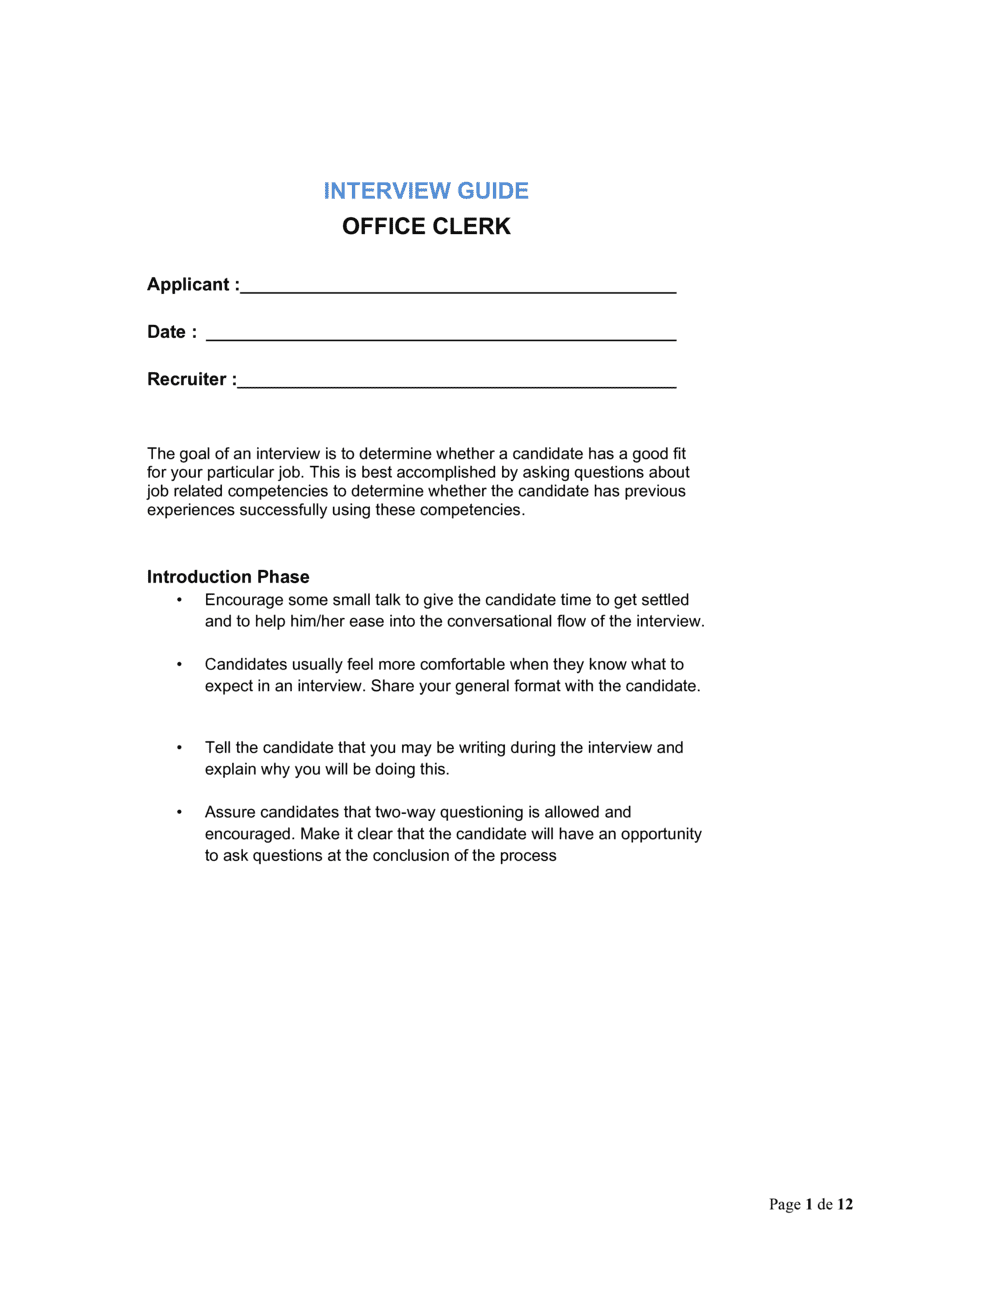 Business-in-a-Box's Interview Guide Office Clerk Template